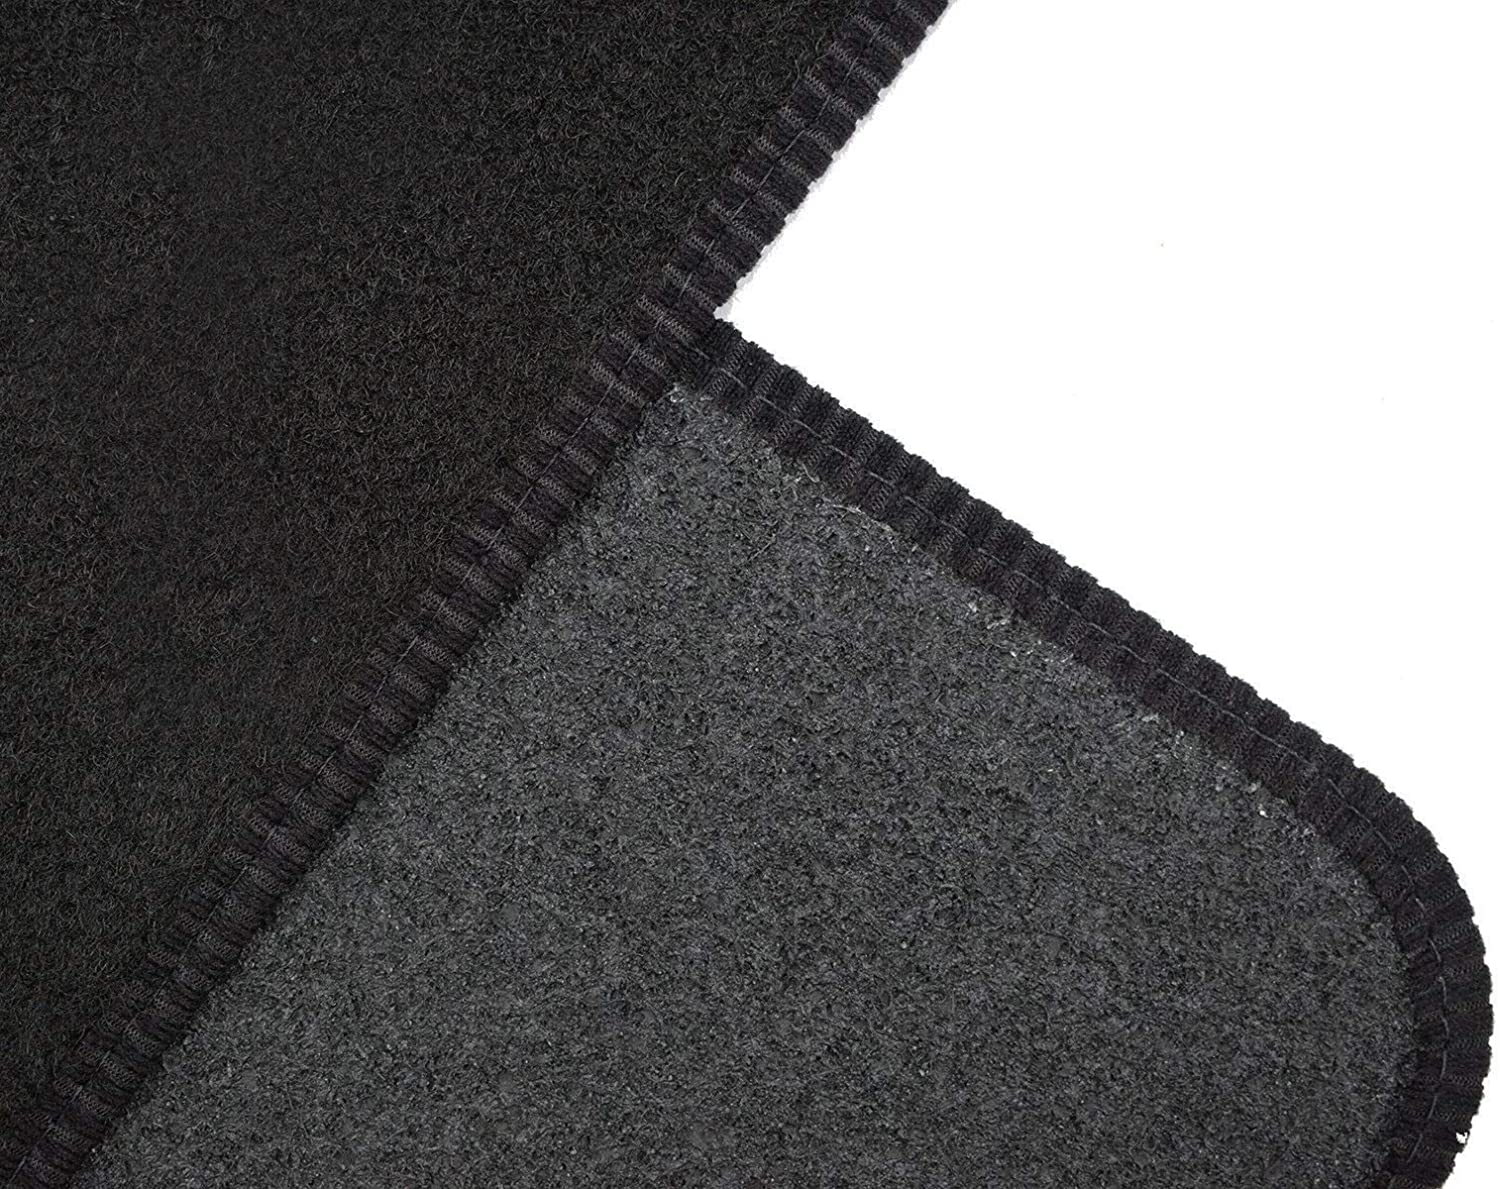 Simply Car Tailored Fit Blue Colour Edge Trim 4pc Black Carpet Floor Mats for Skoda Karoq